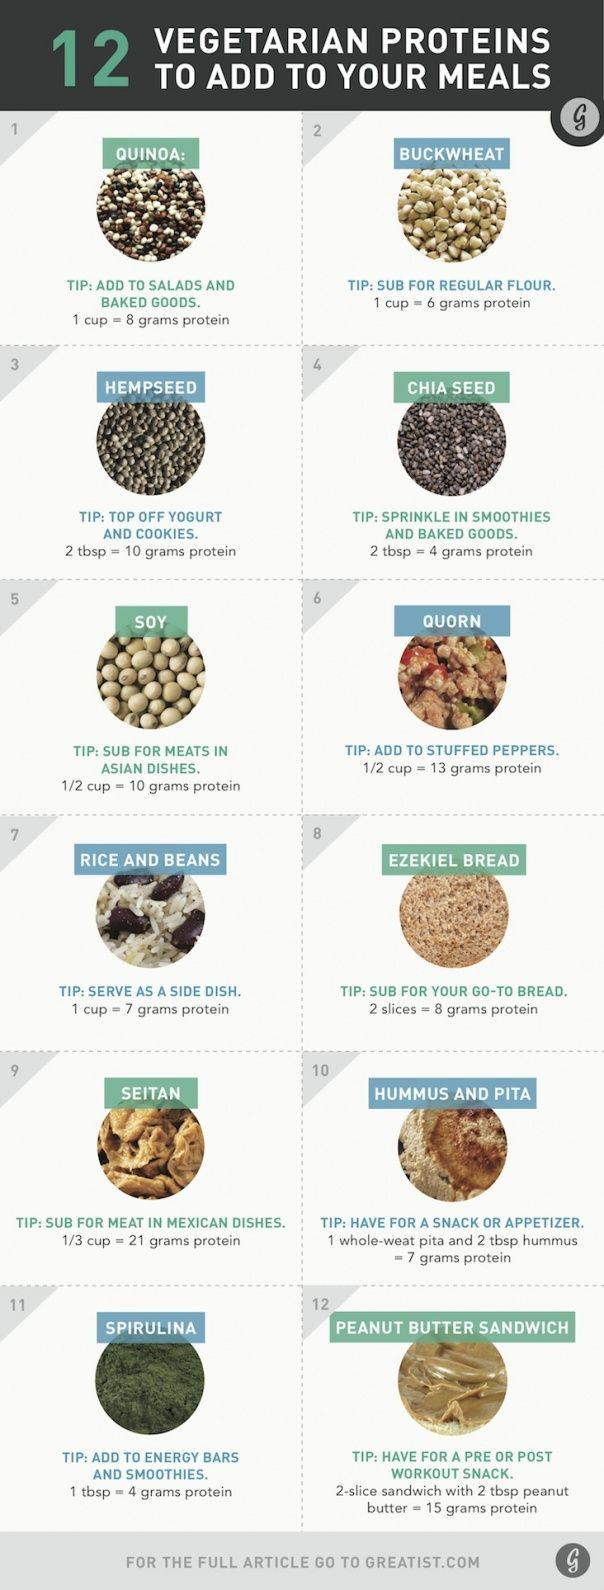 12 Proteins to add to your meal: